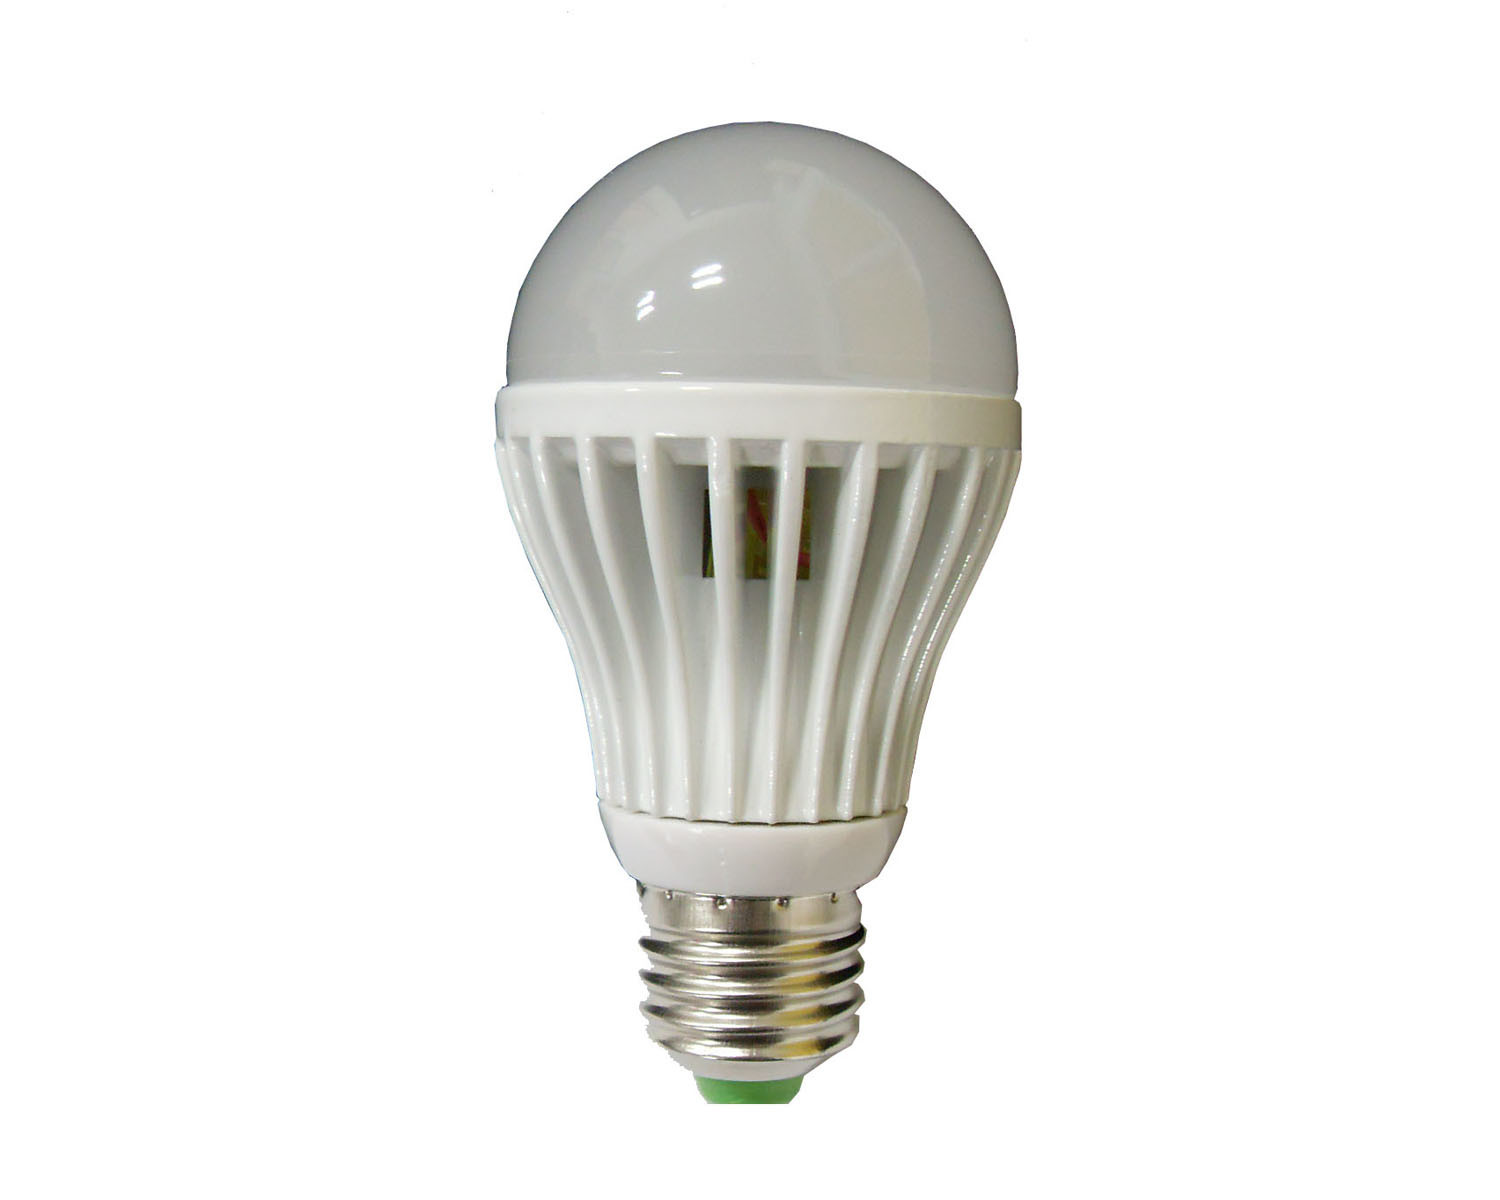 China led bulb light 9w 800lm china led bulbs lamp led bulb light Led bulbs